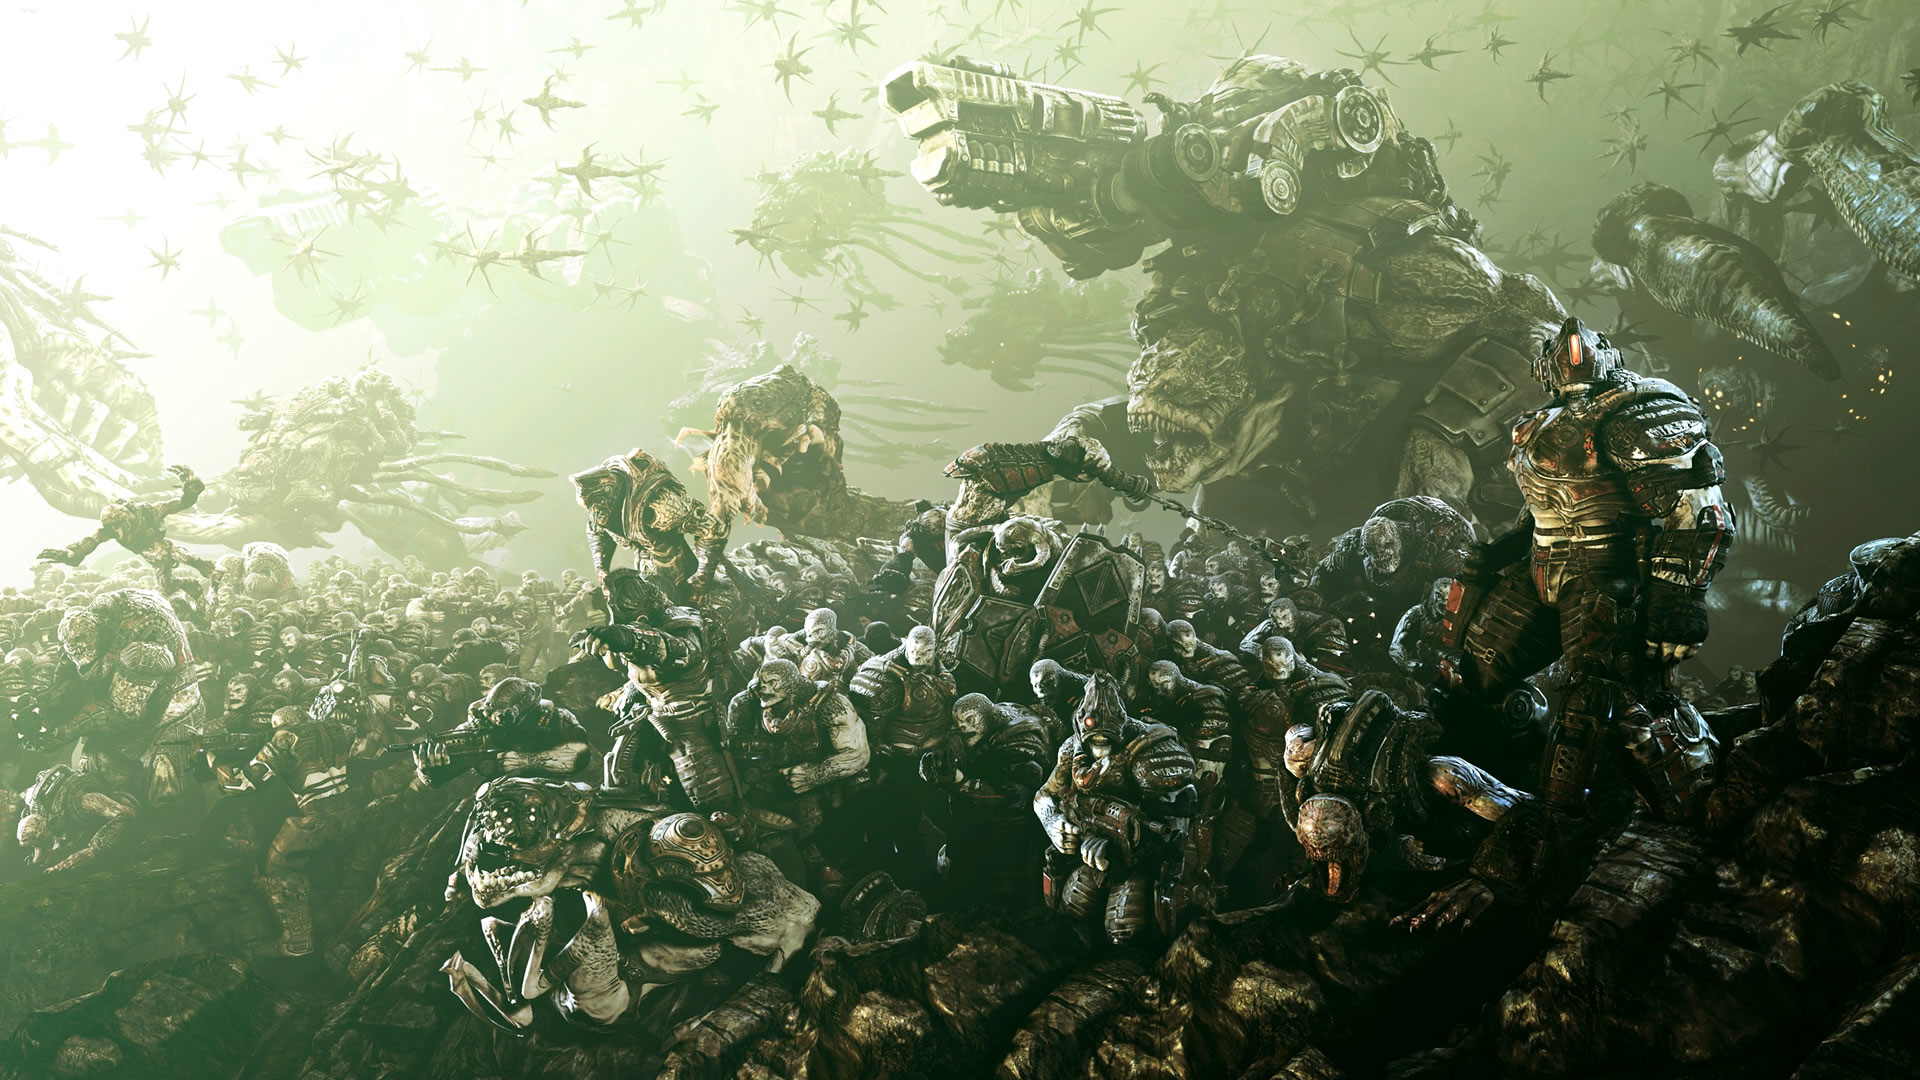 Fabulous Gears Of War Army Soldiers Birds Monsters Wallpaper Â« Kuff Games